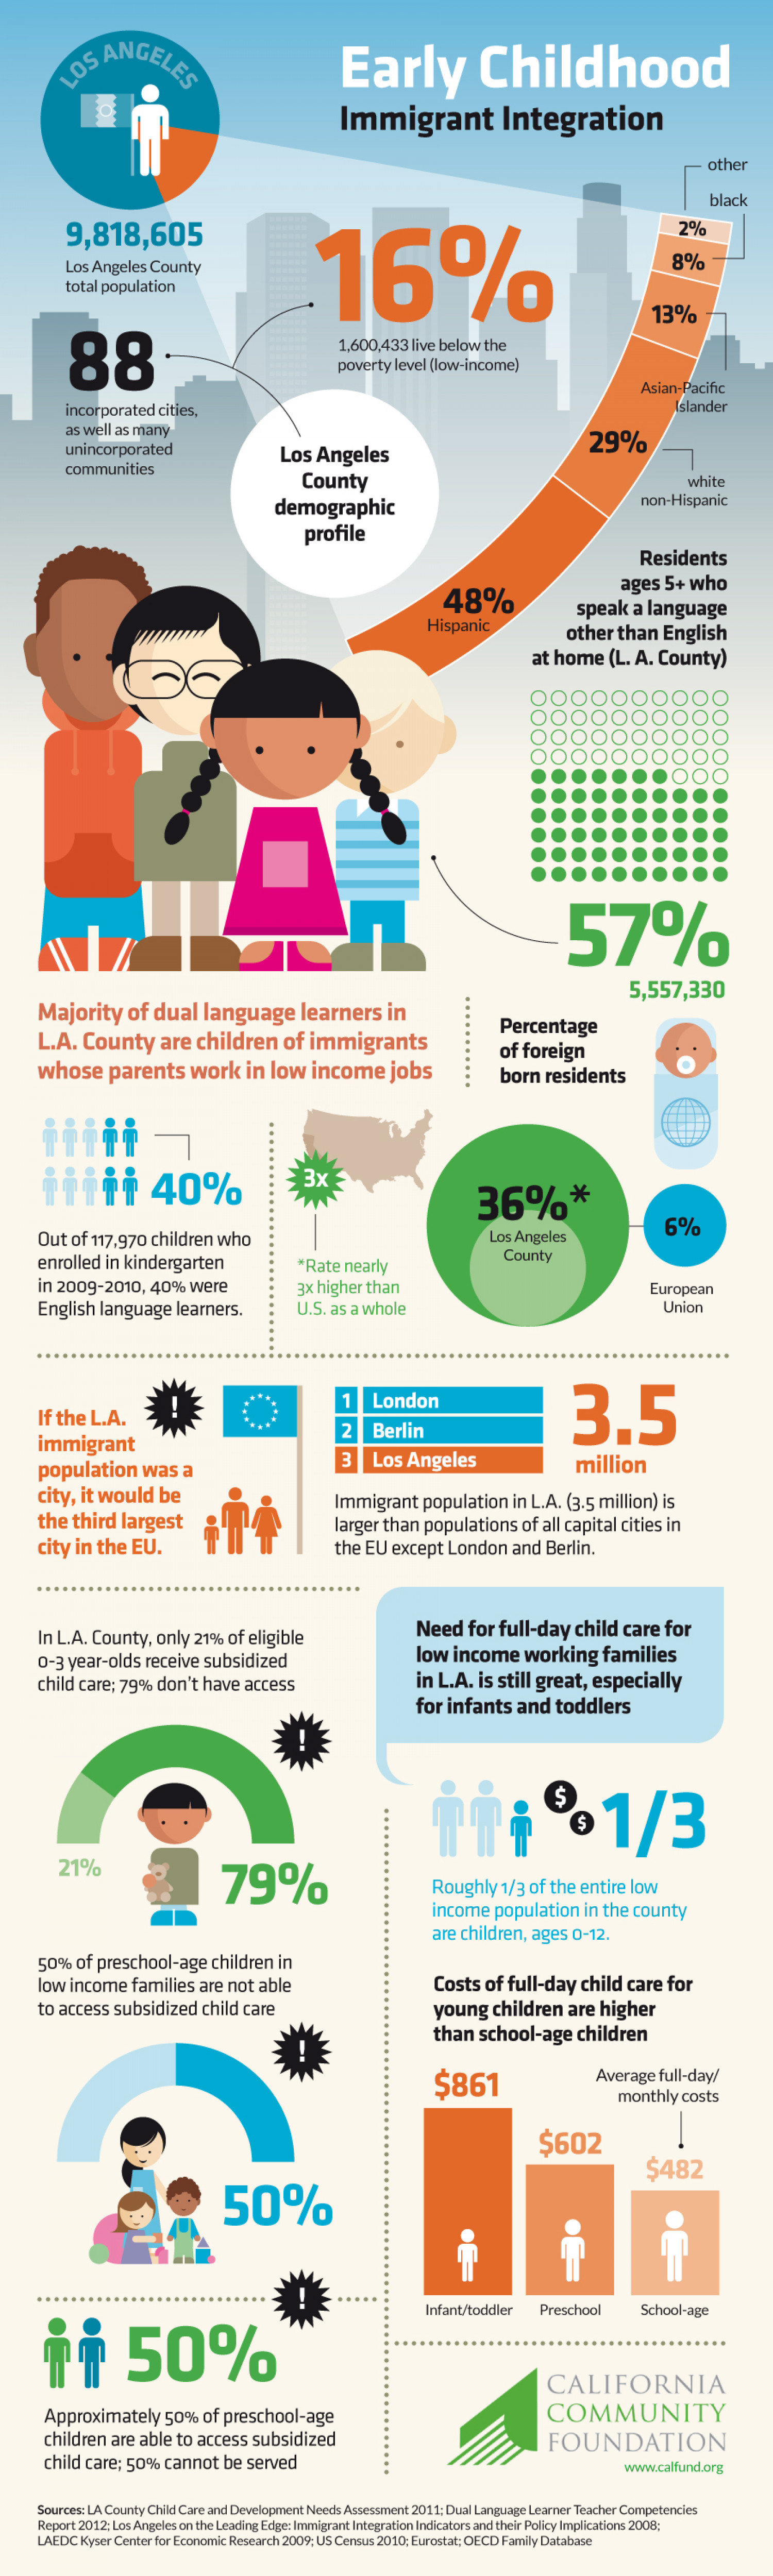 Early Childhood Immigrant Integration Infographic